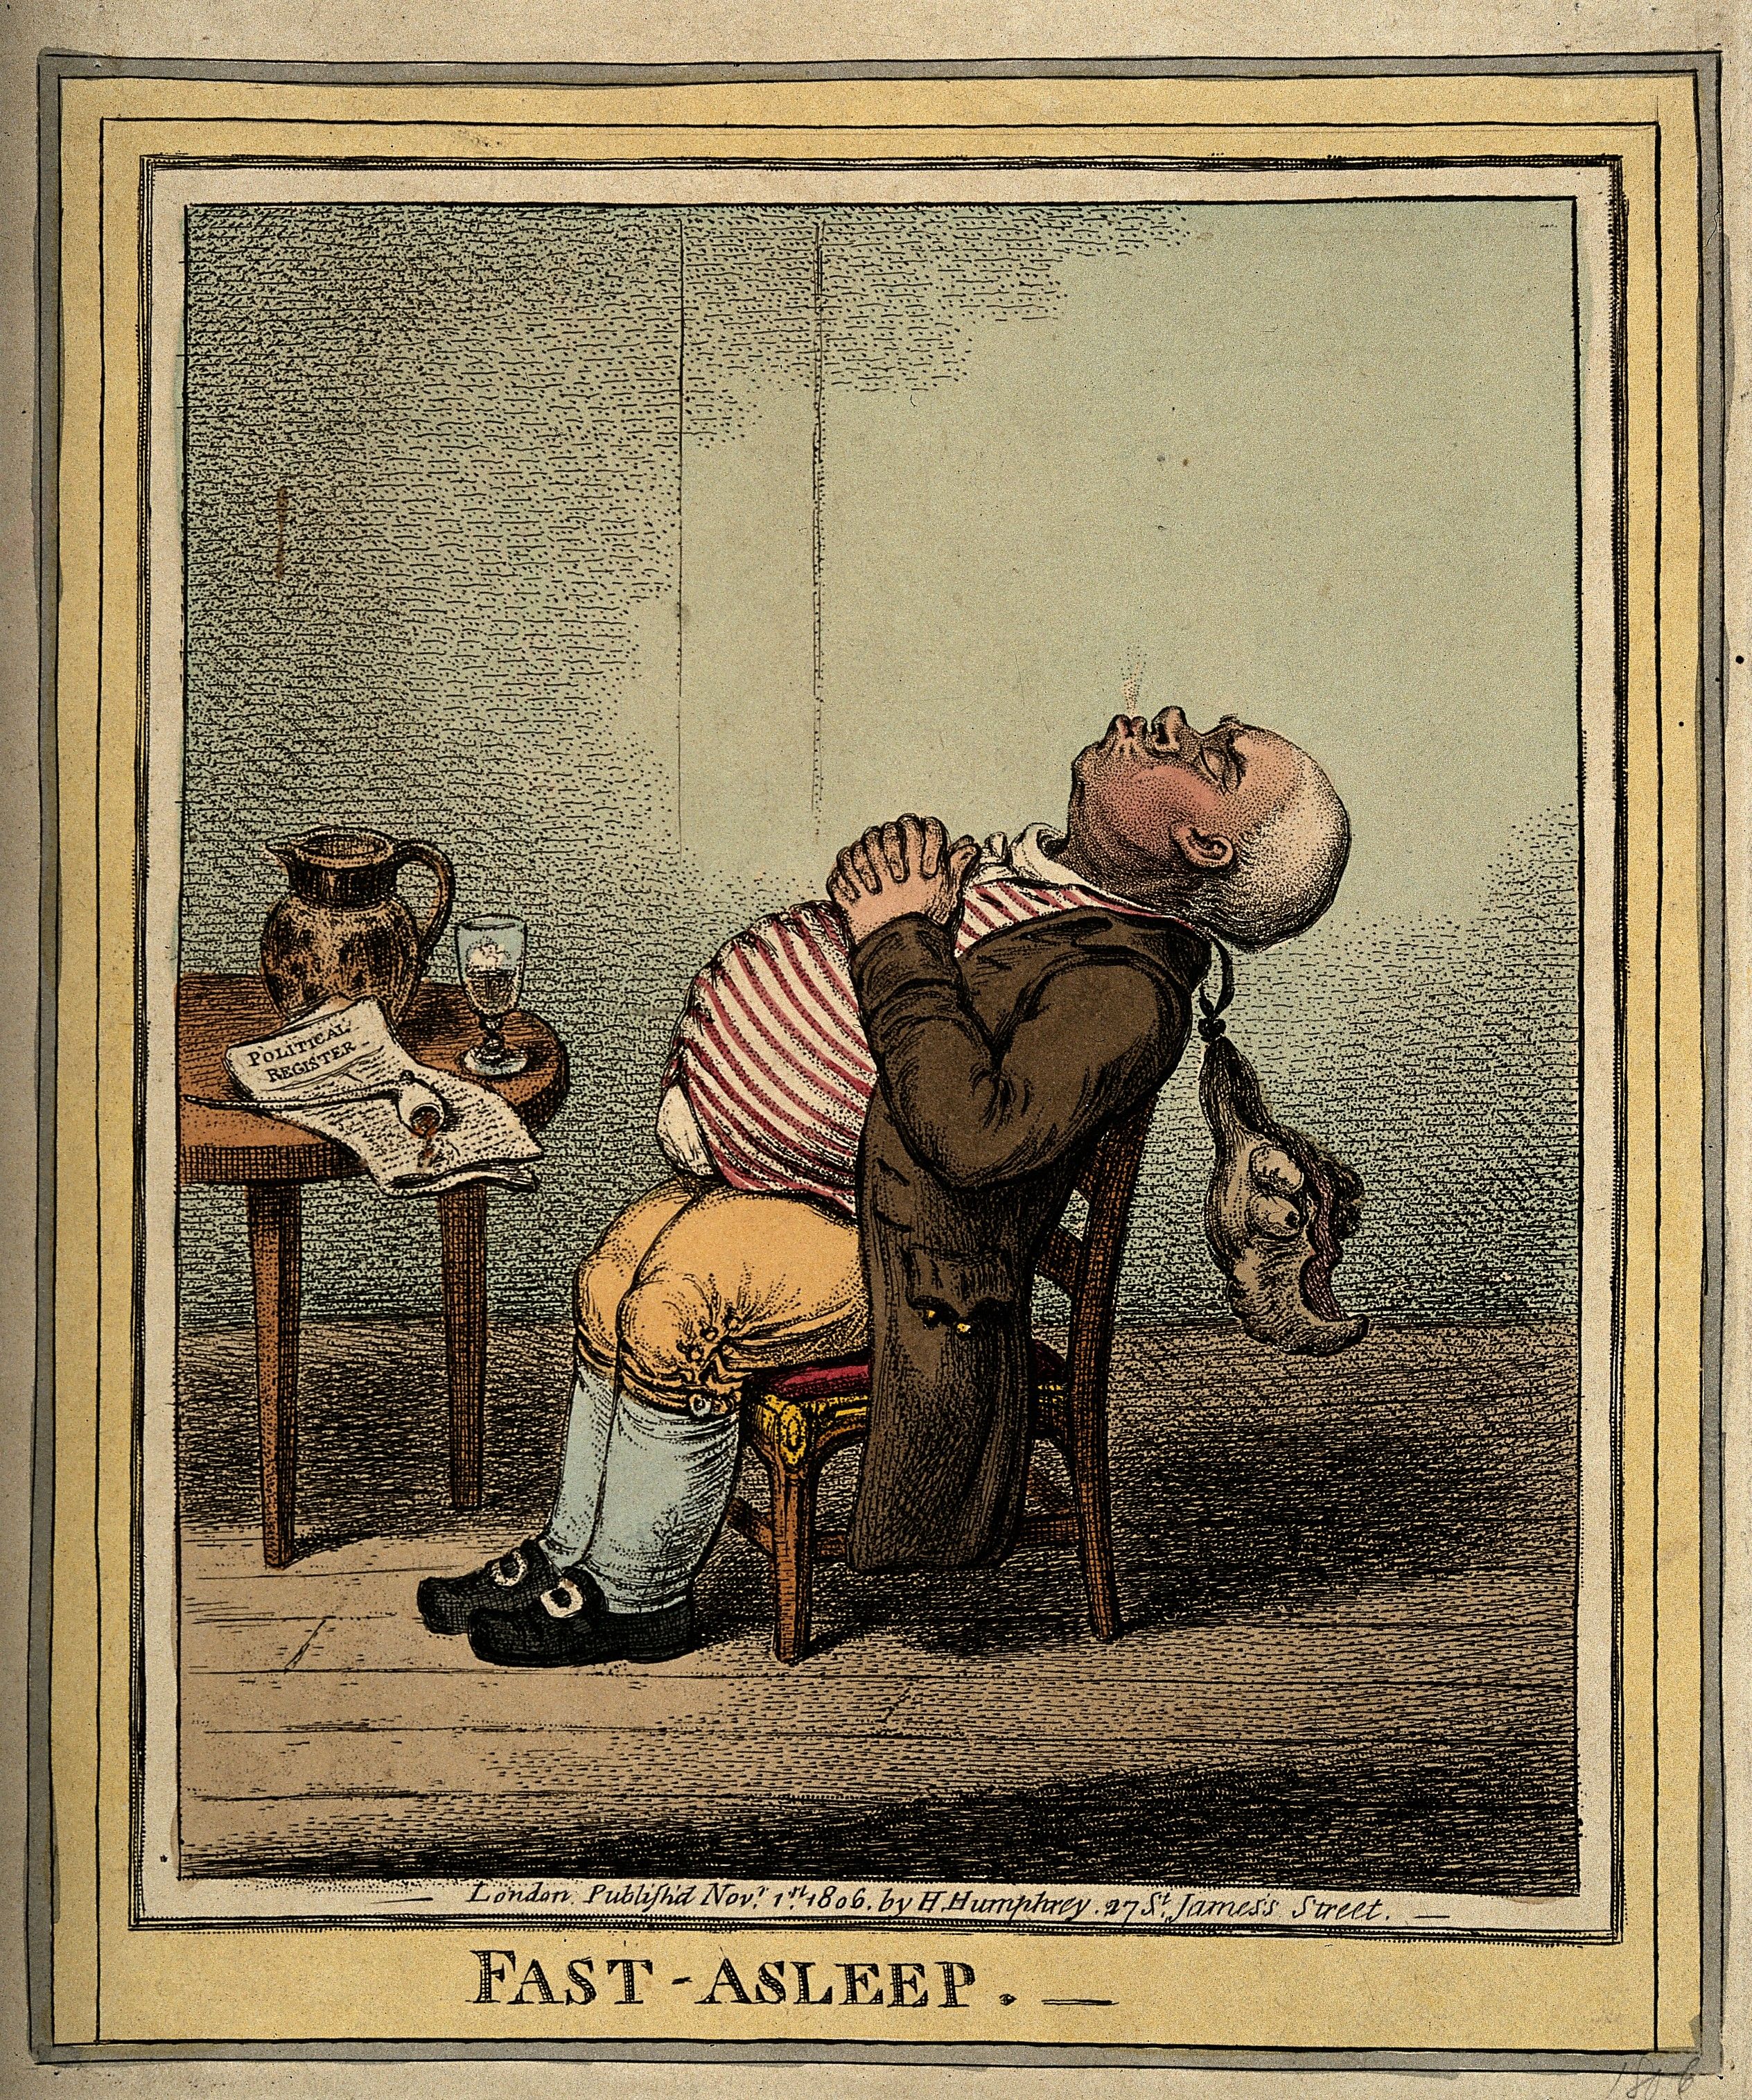 """A man fast asleep with his head back and wig dangling. Colou Wellcome V0010878"" by http://wellcomeimages.org/indexplus/obf_images/8d/55/d327d34b4143a01eb66d803e568e.jpgGallery: http://wellcomeimages.org/indexplus/image/V0010878.html. Licensed under CC BY 4.0 via Wikimedia Commons - http://commons.wikimedia.org/wiki/File:A_man_fast_asleep_with_his_head_back_and_wig_dangling._Colou_Wellcome_V0010878.jpg#/media/File:A_man_fast_asleep_with_his_head_back_and_wig_dangling._Colou_Wellcome_V0010878.jpg"